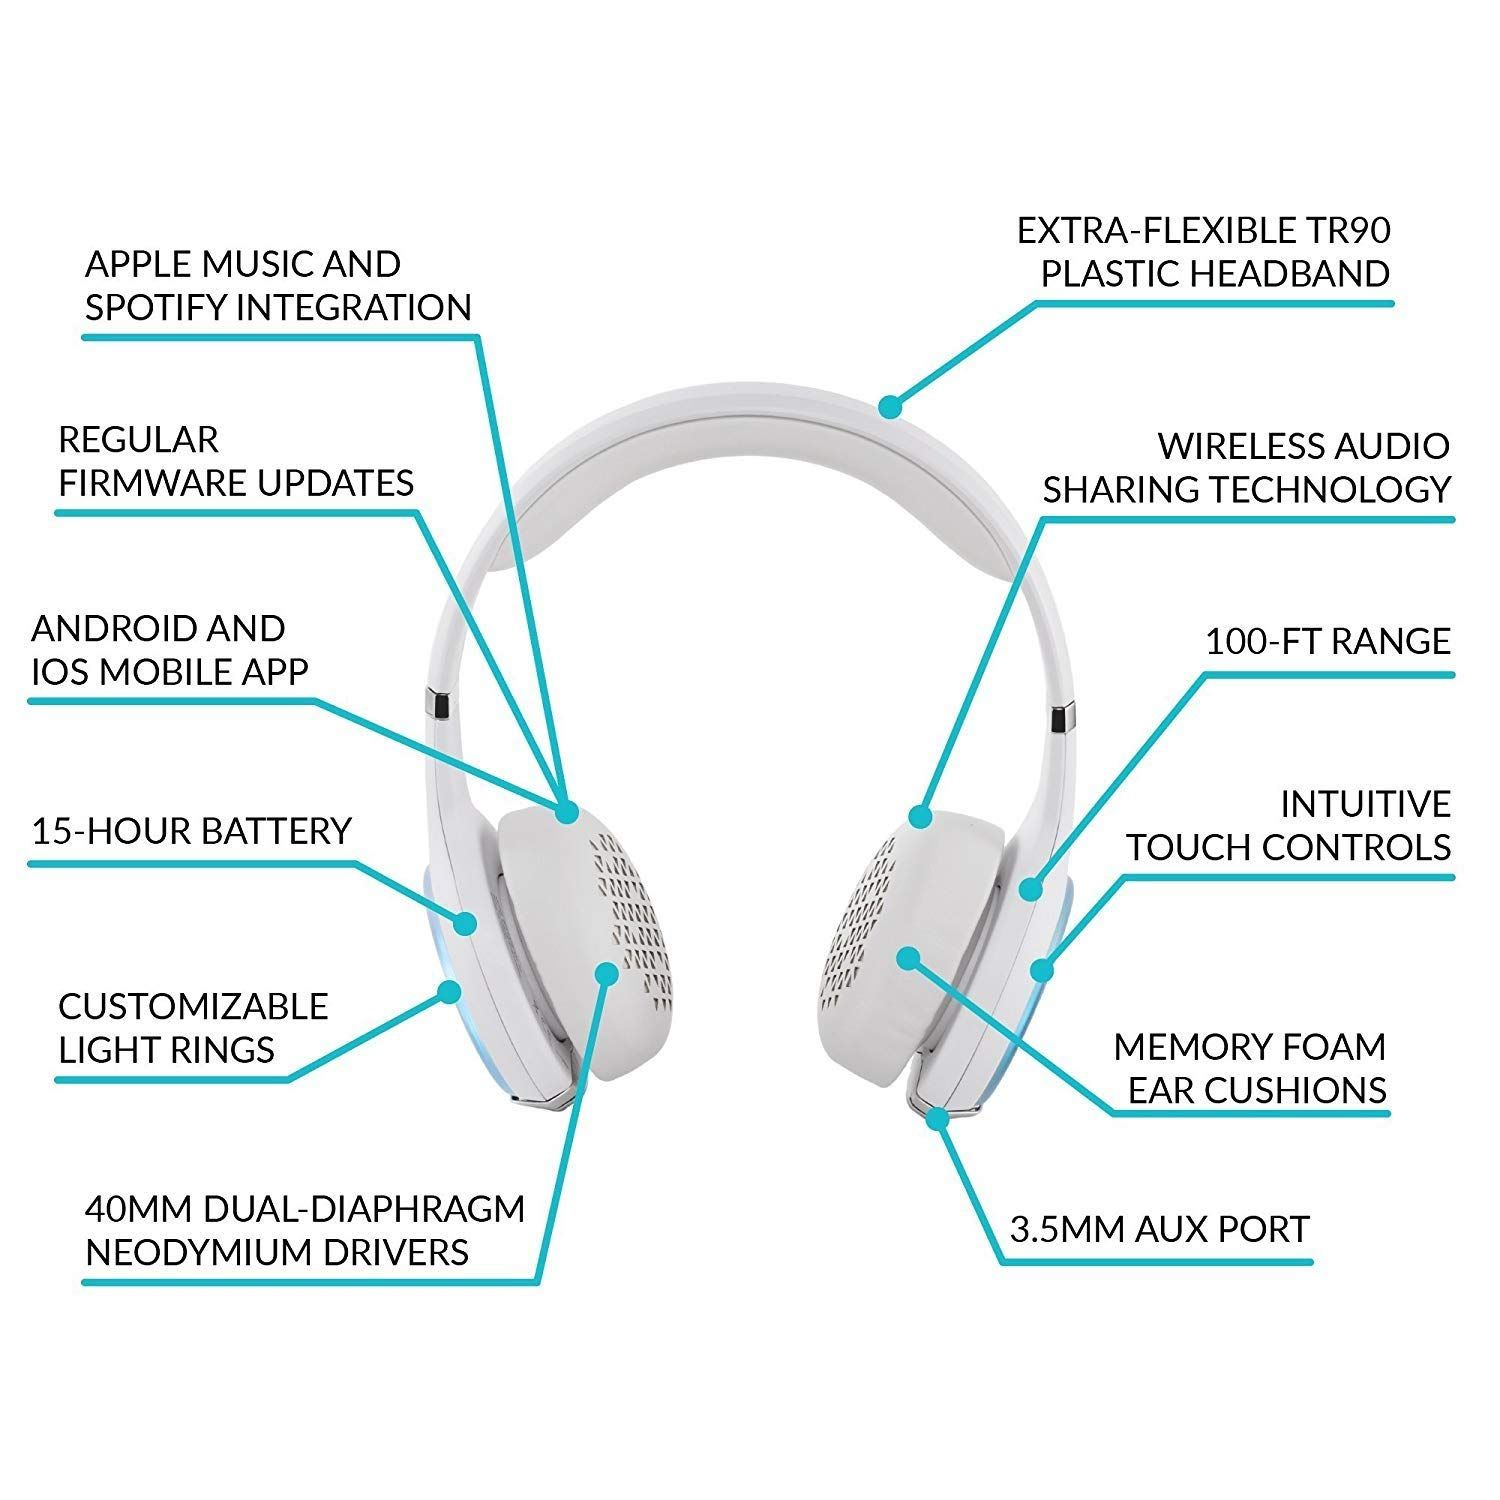 Wiring Diagram For Apple Headphones